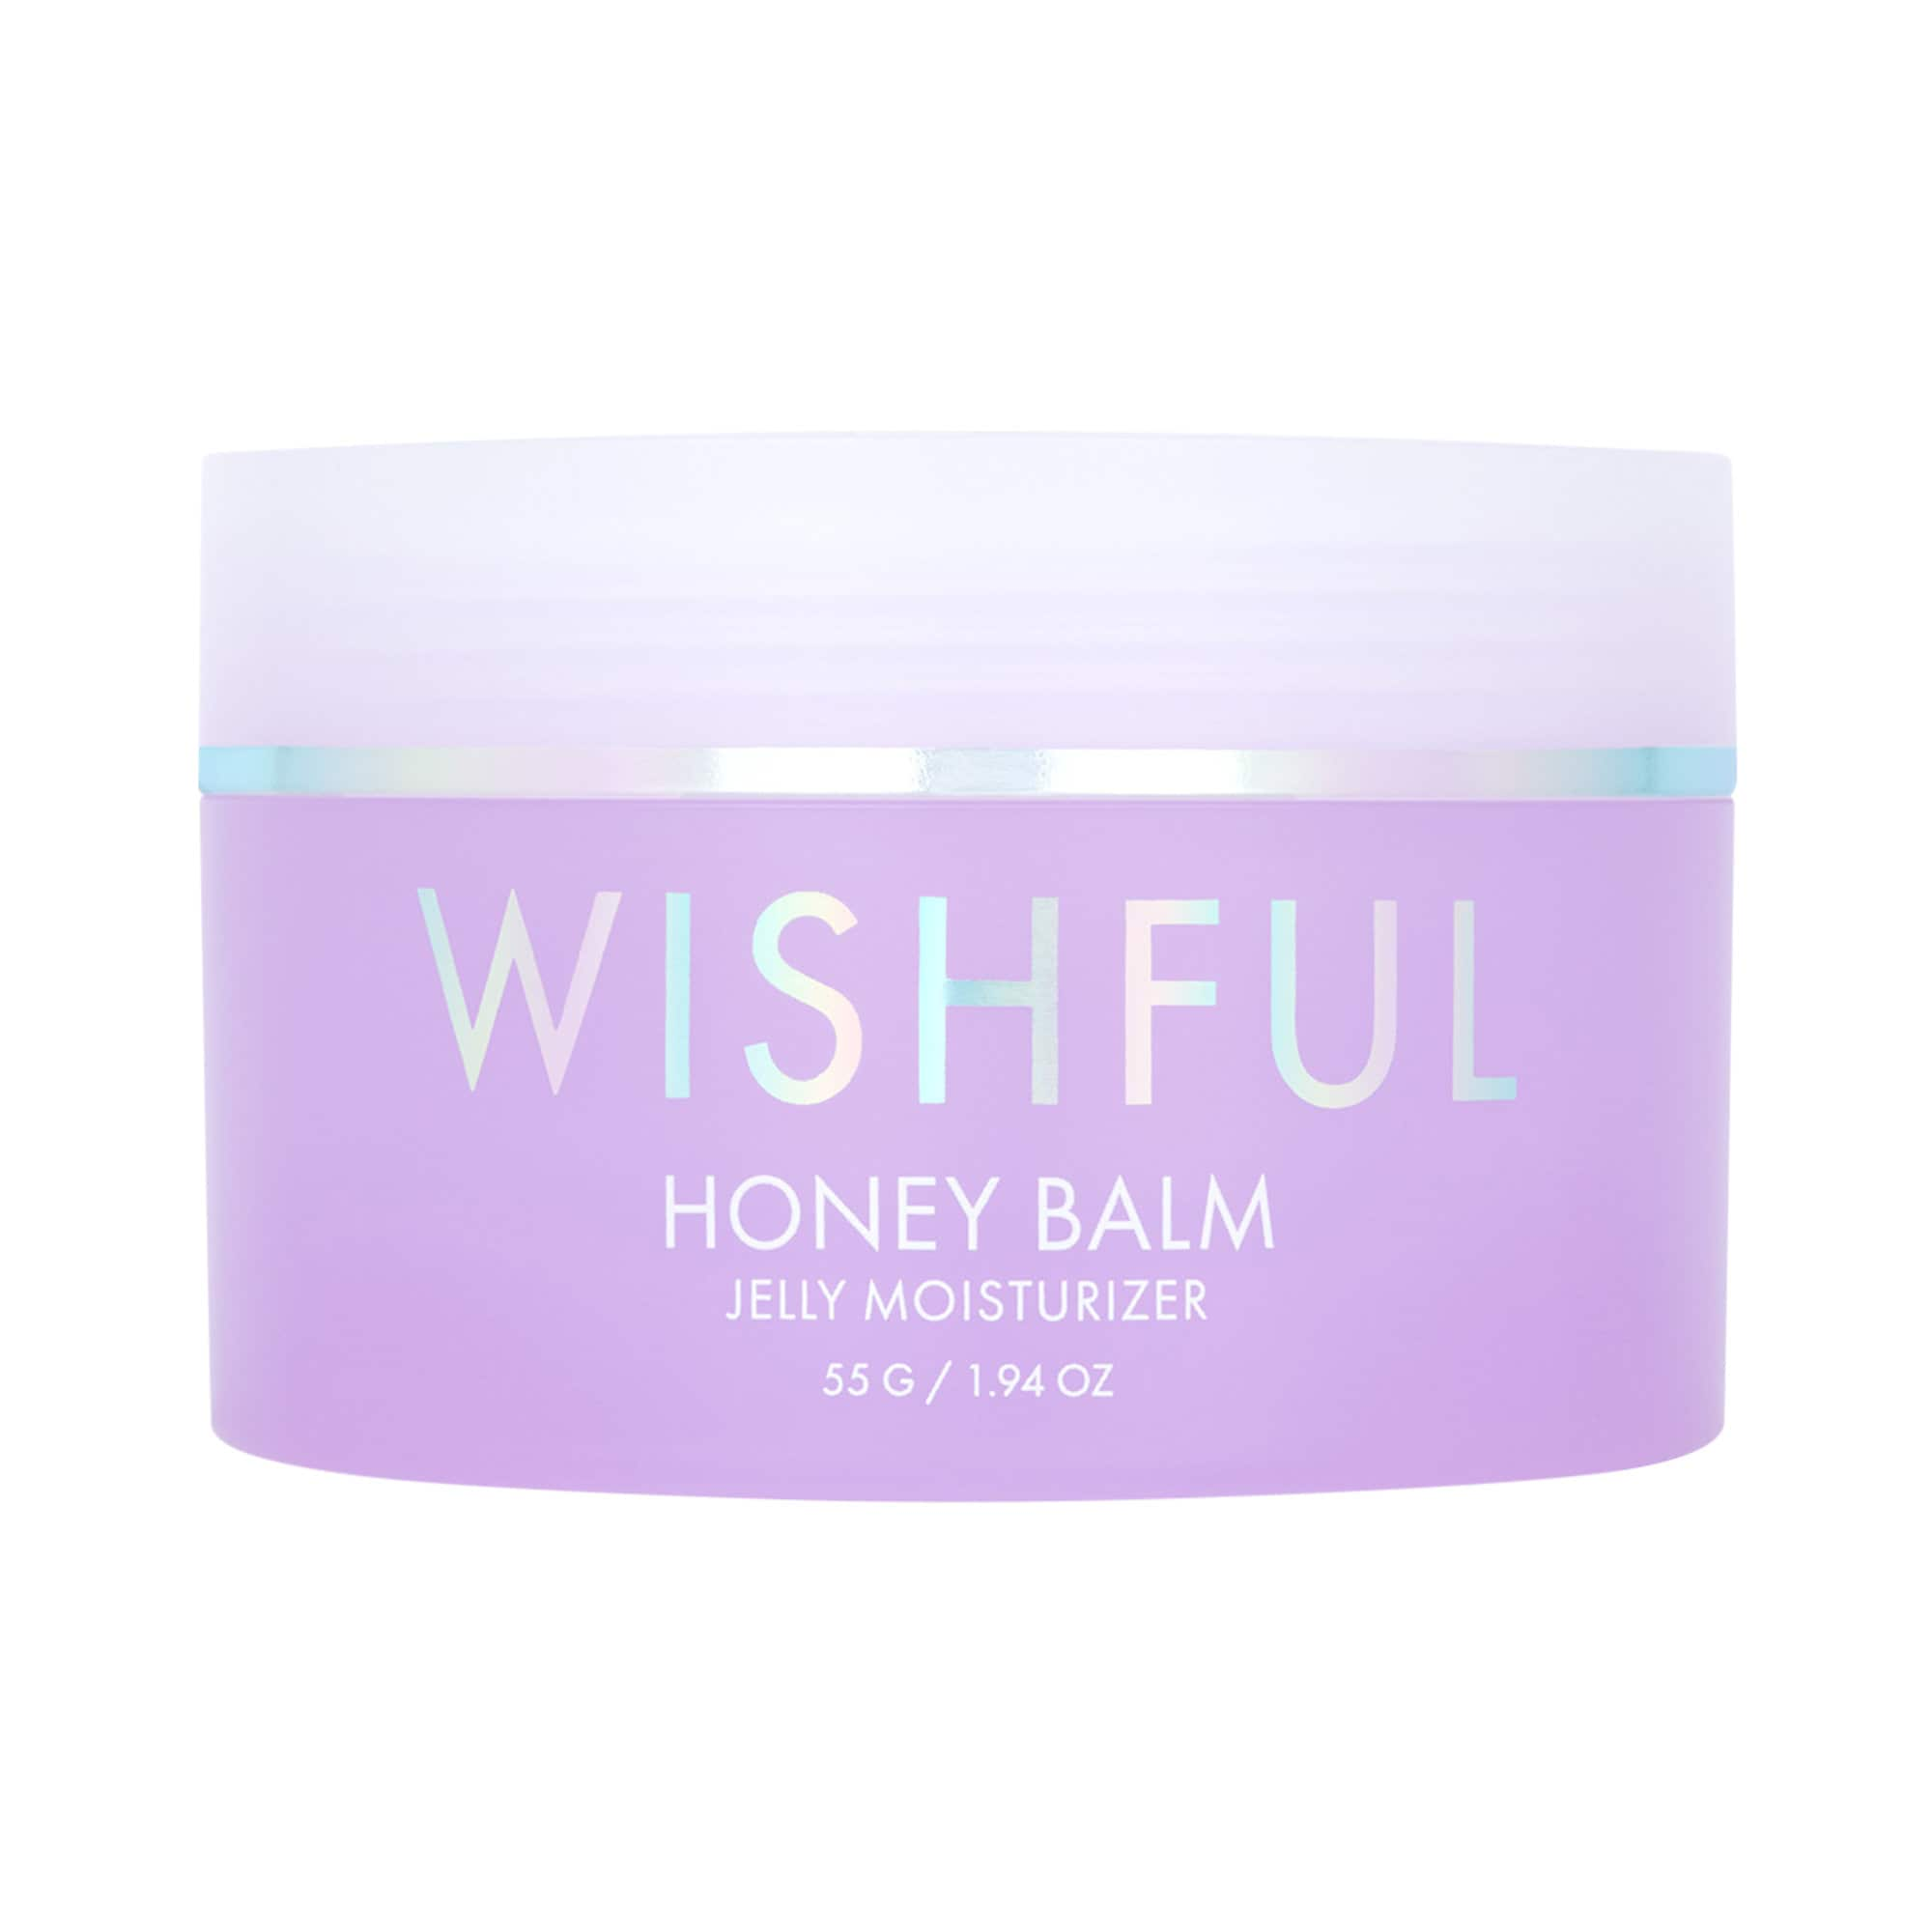 Wishful - Honey Balm Niacinamide Moisturizer